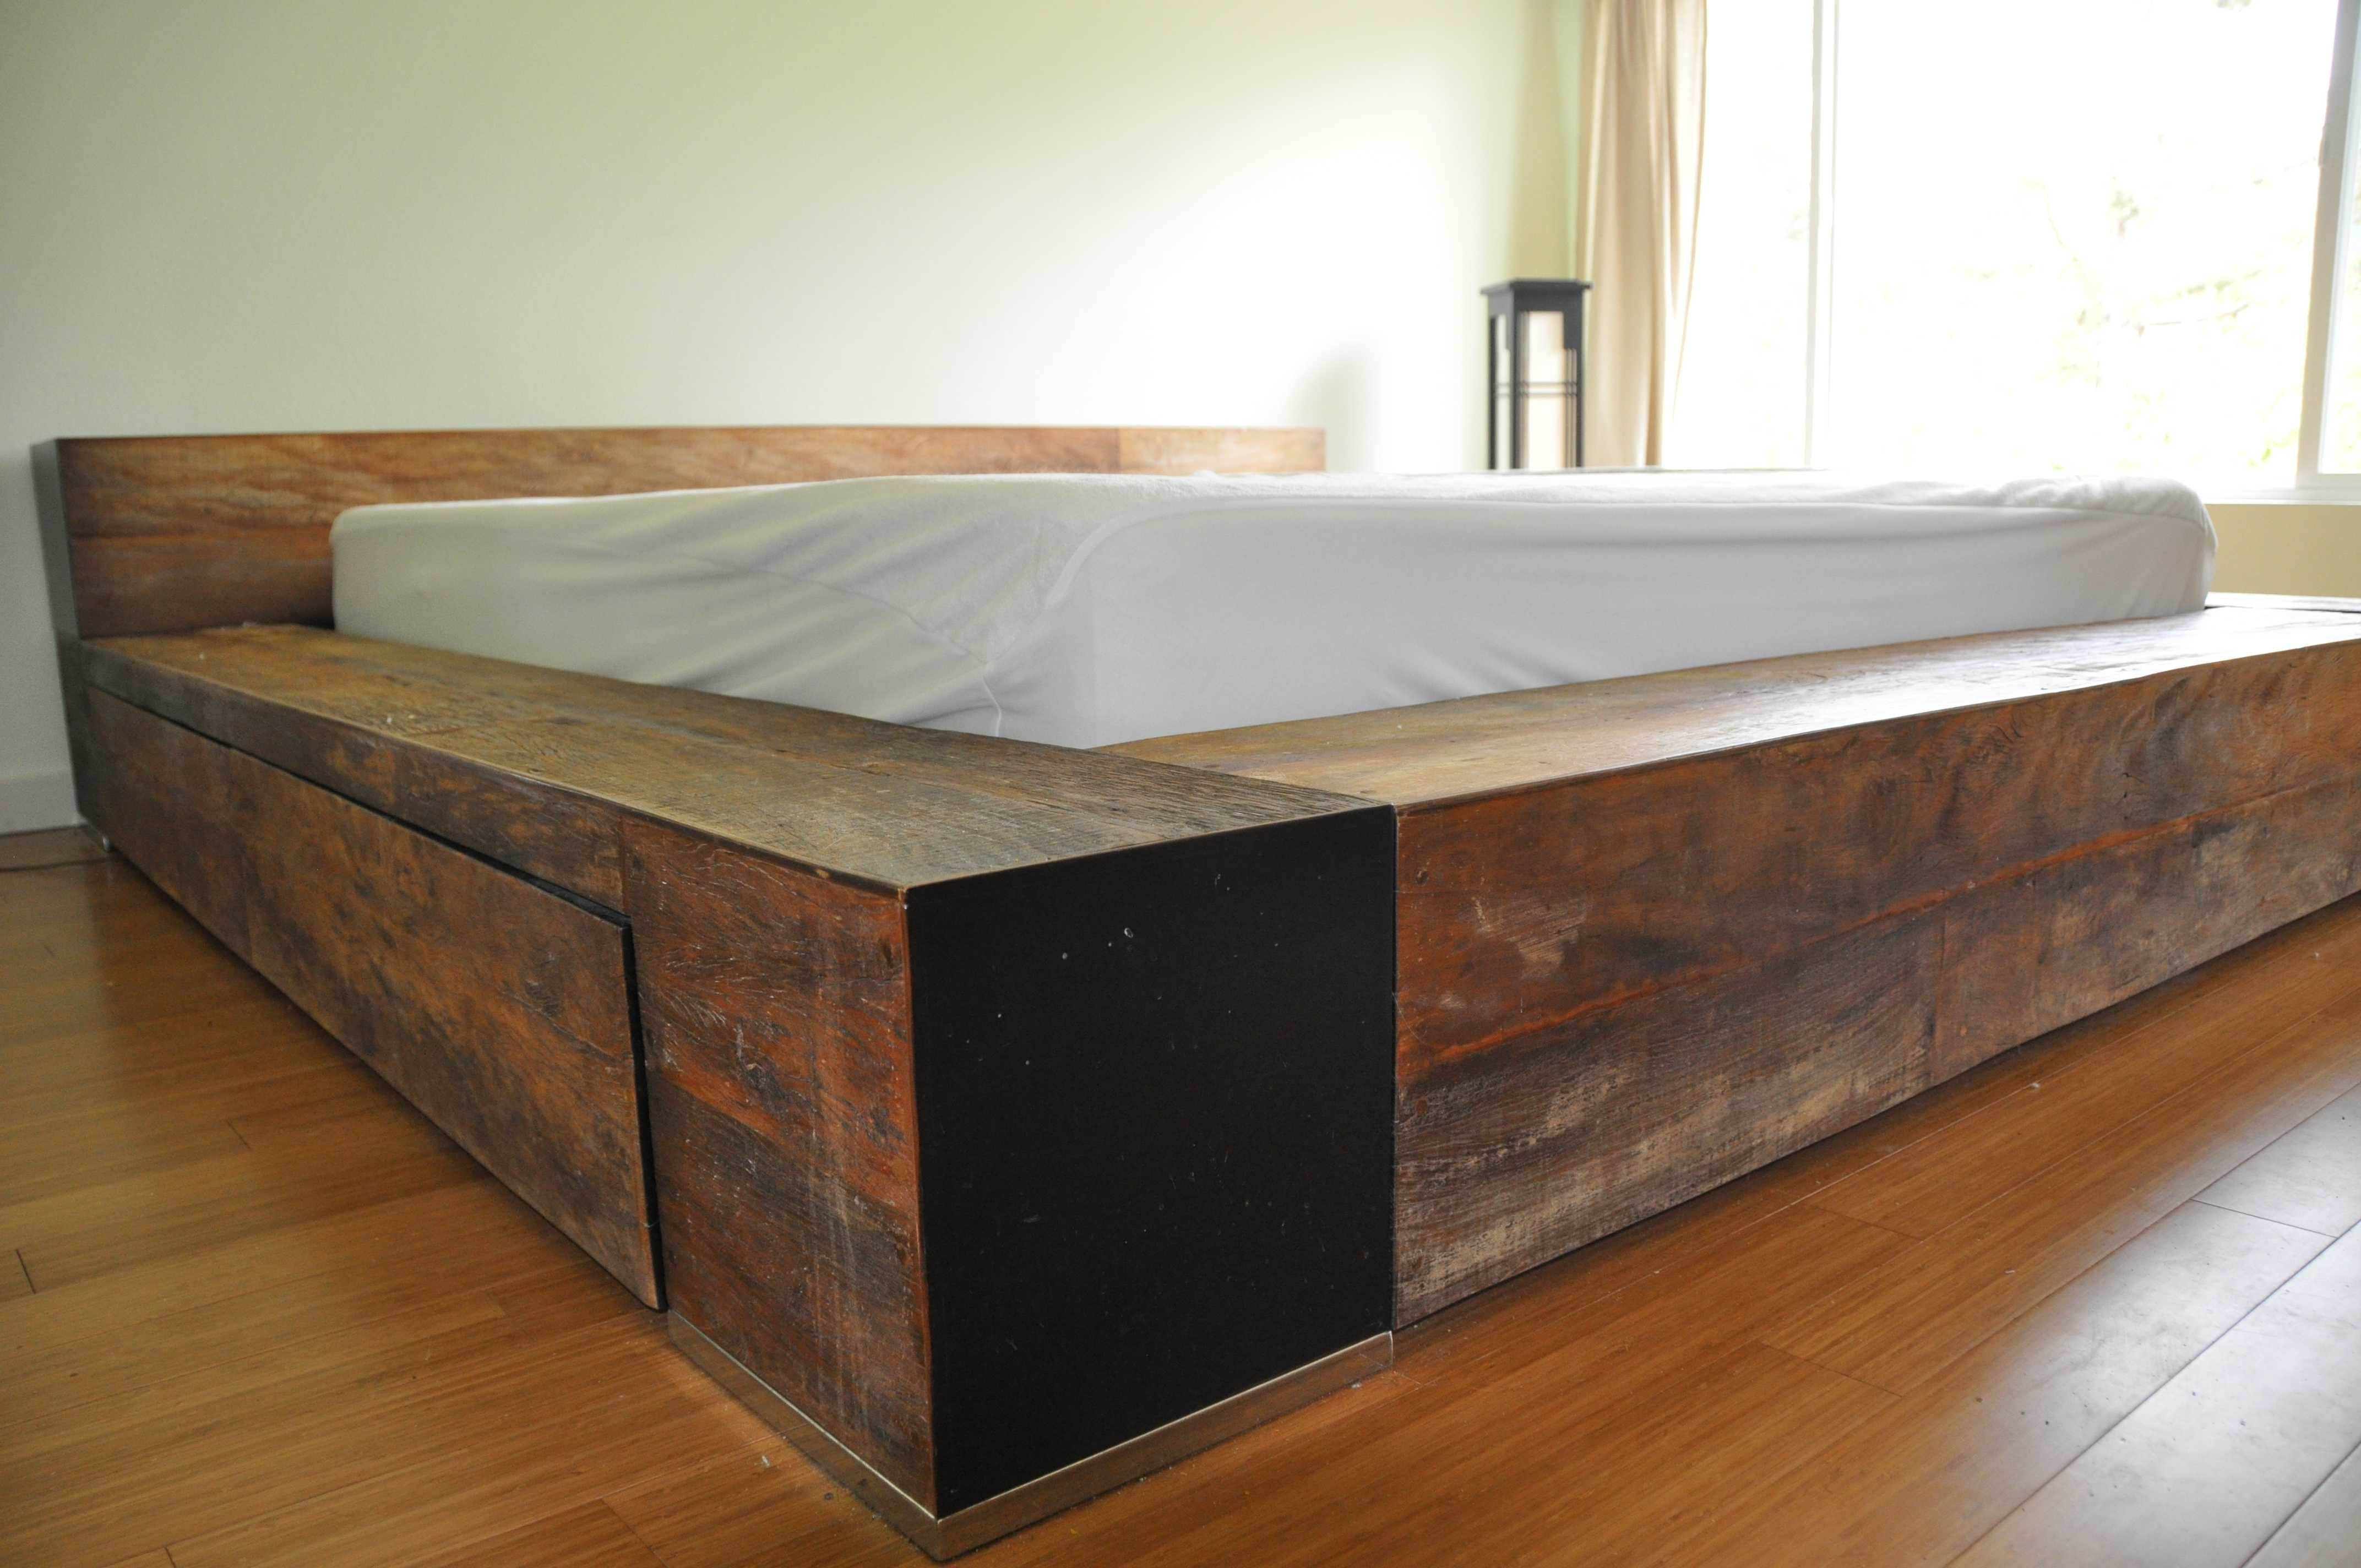 King Size Bed Reclaimed Wood Headboard Best Of King Size Bed